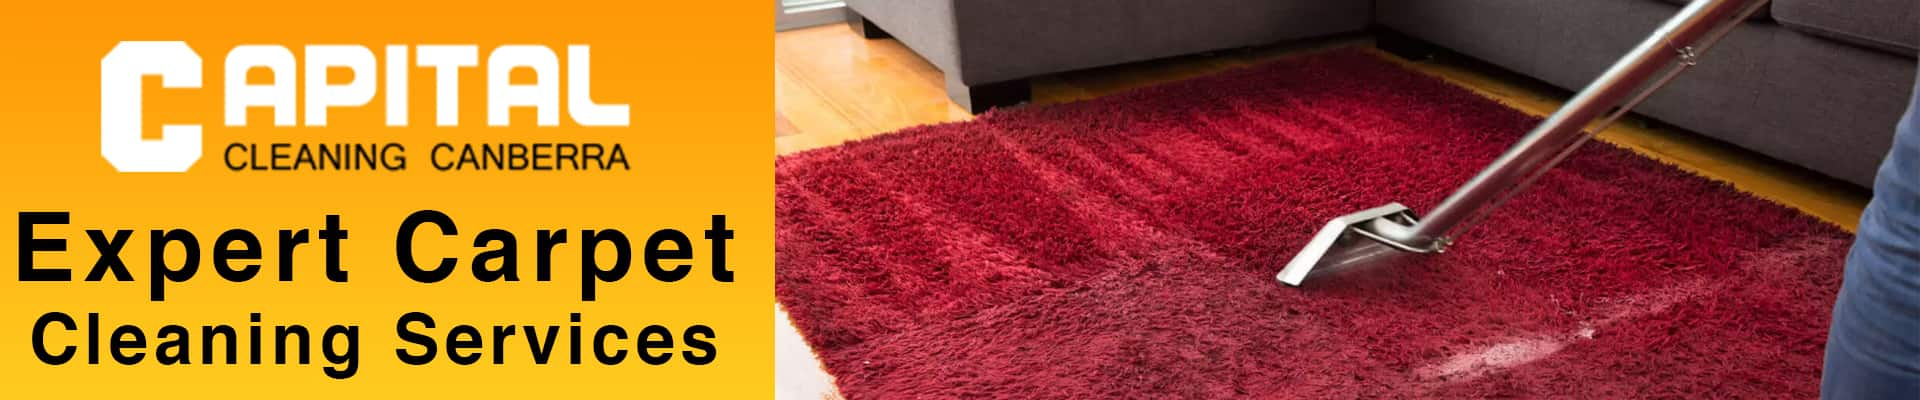 Expert Carpet Cleaning Services Franklin